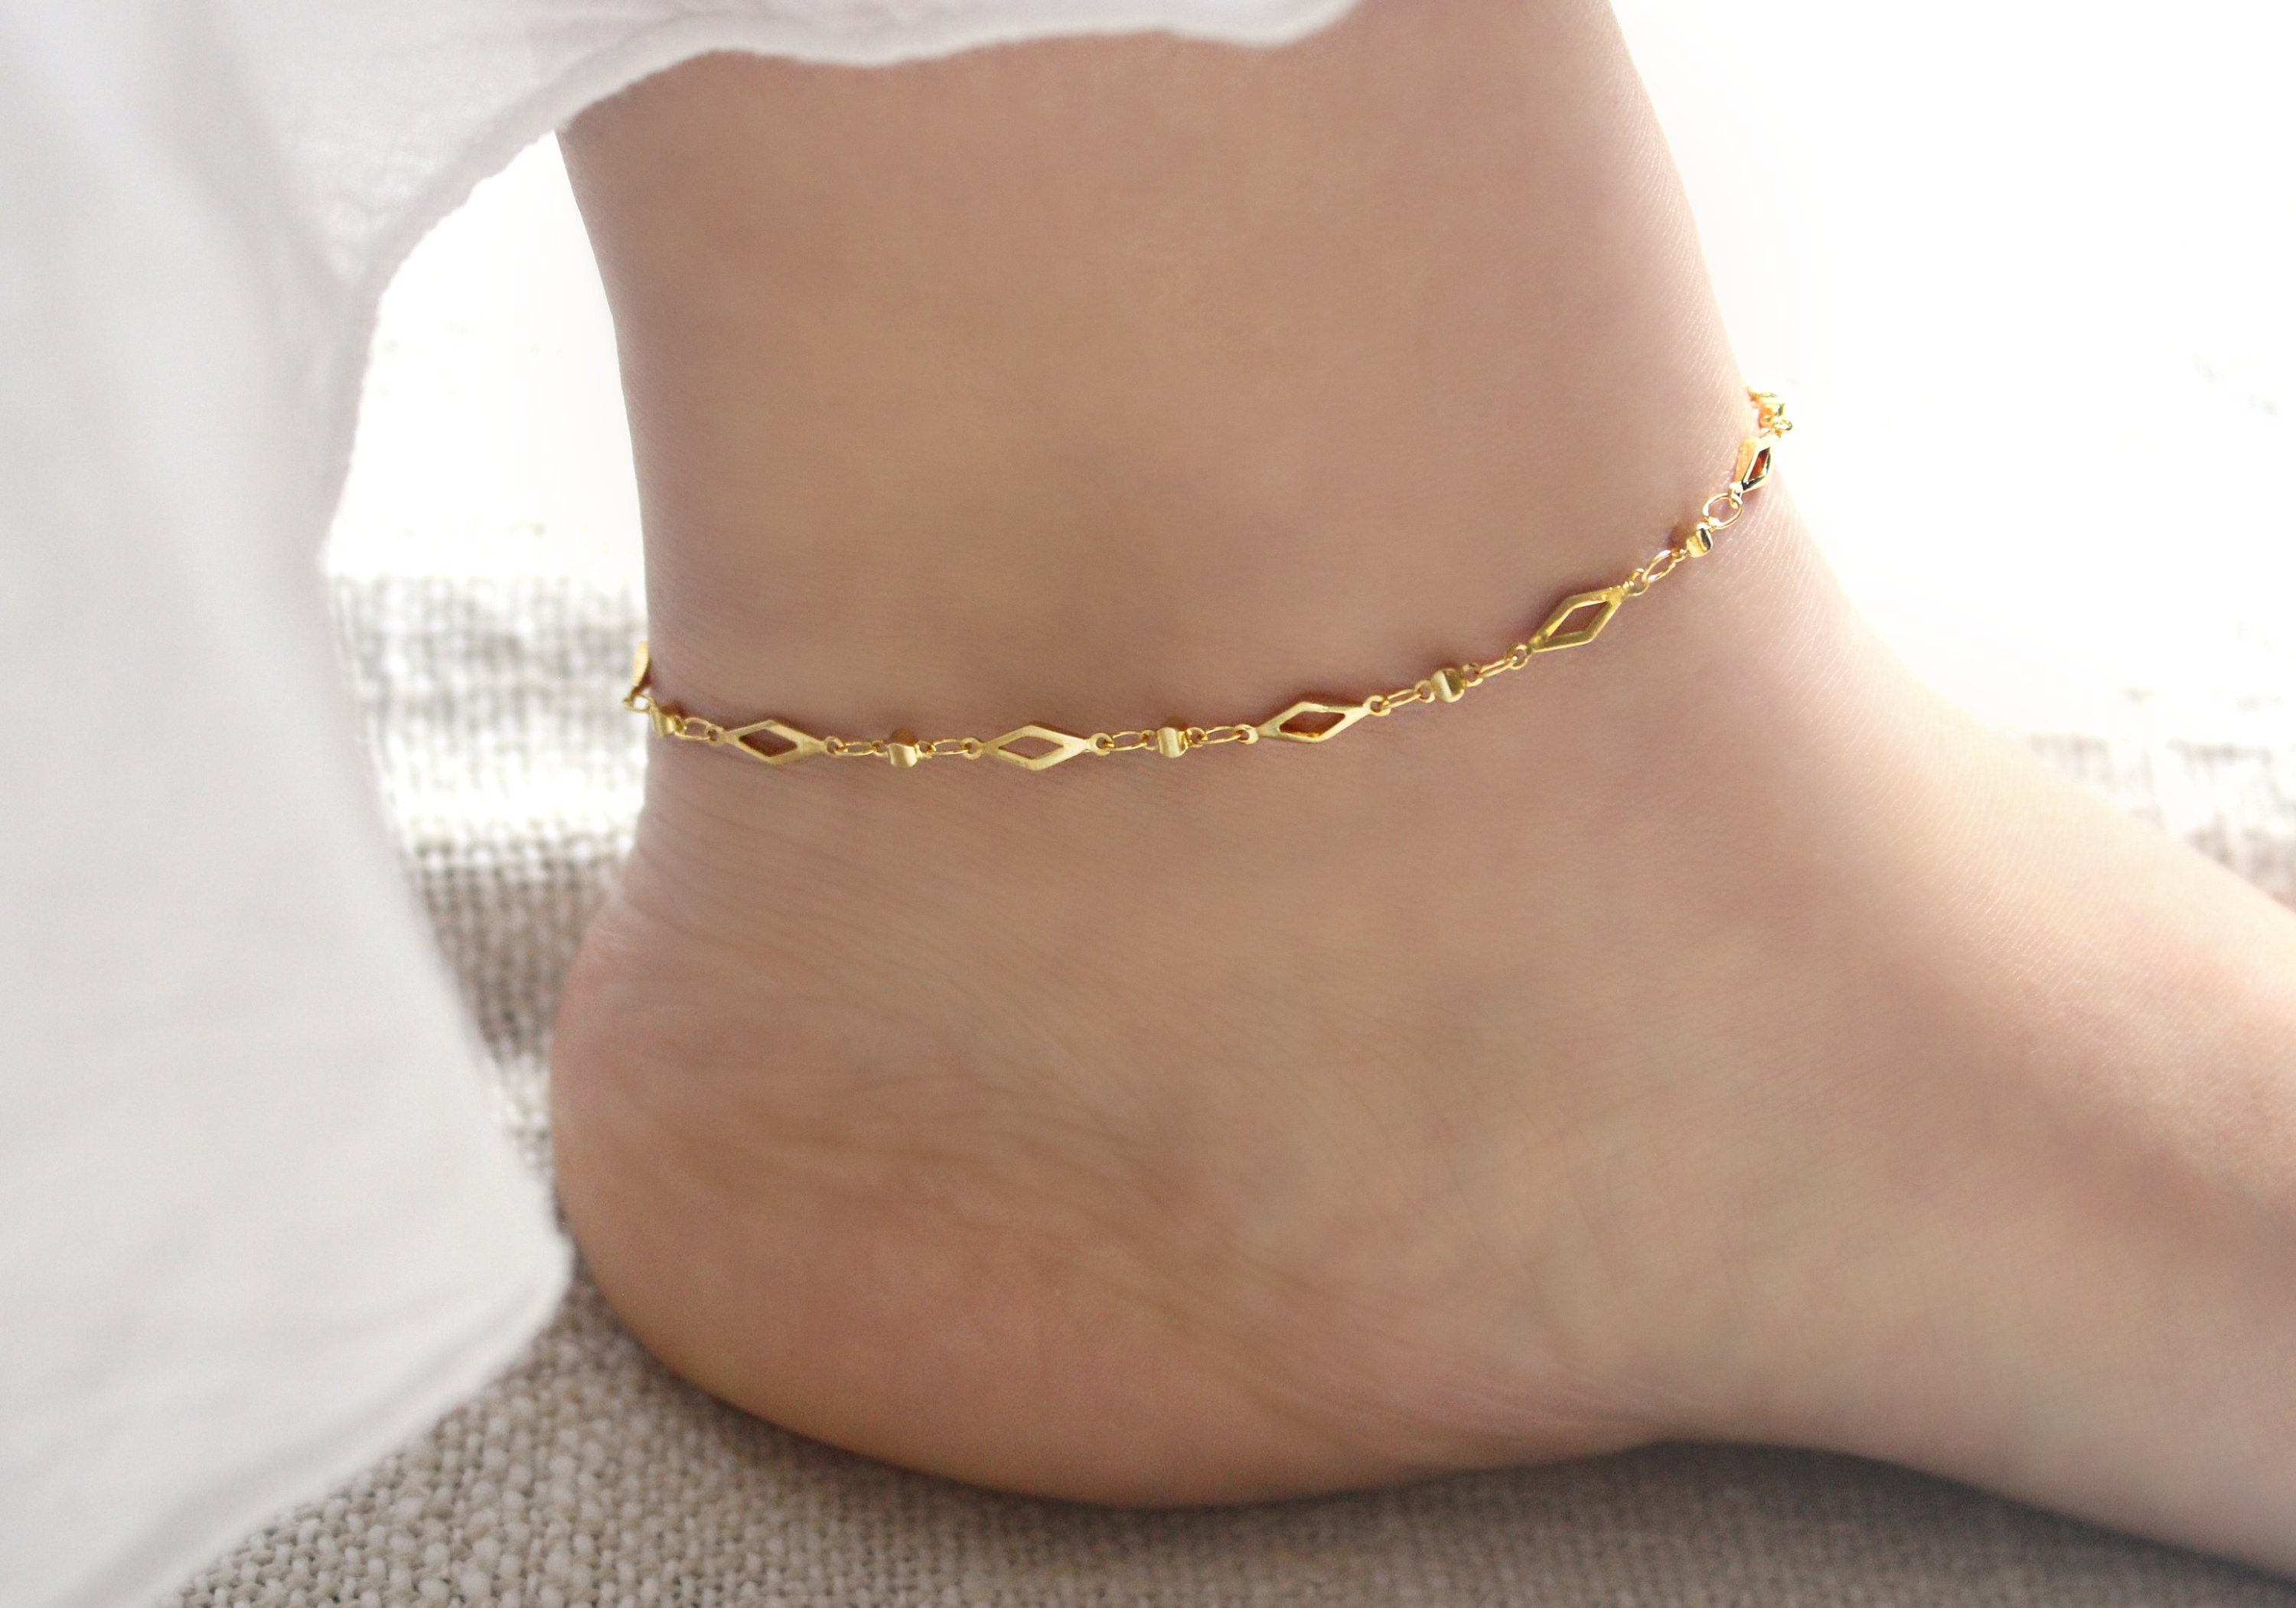 sweetheart pages gold for summer rose find pin com women anklet stylish anklets heart facebook cute s new